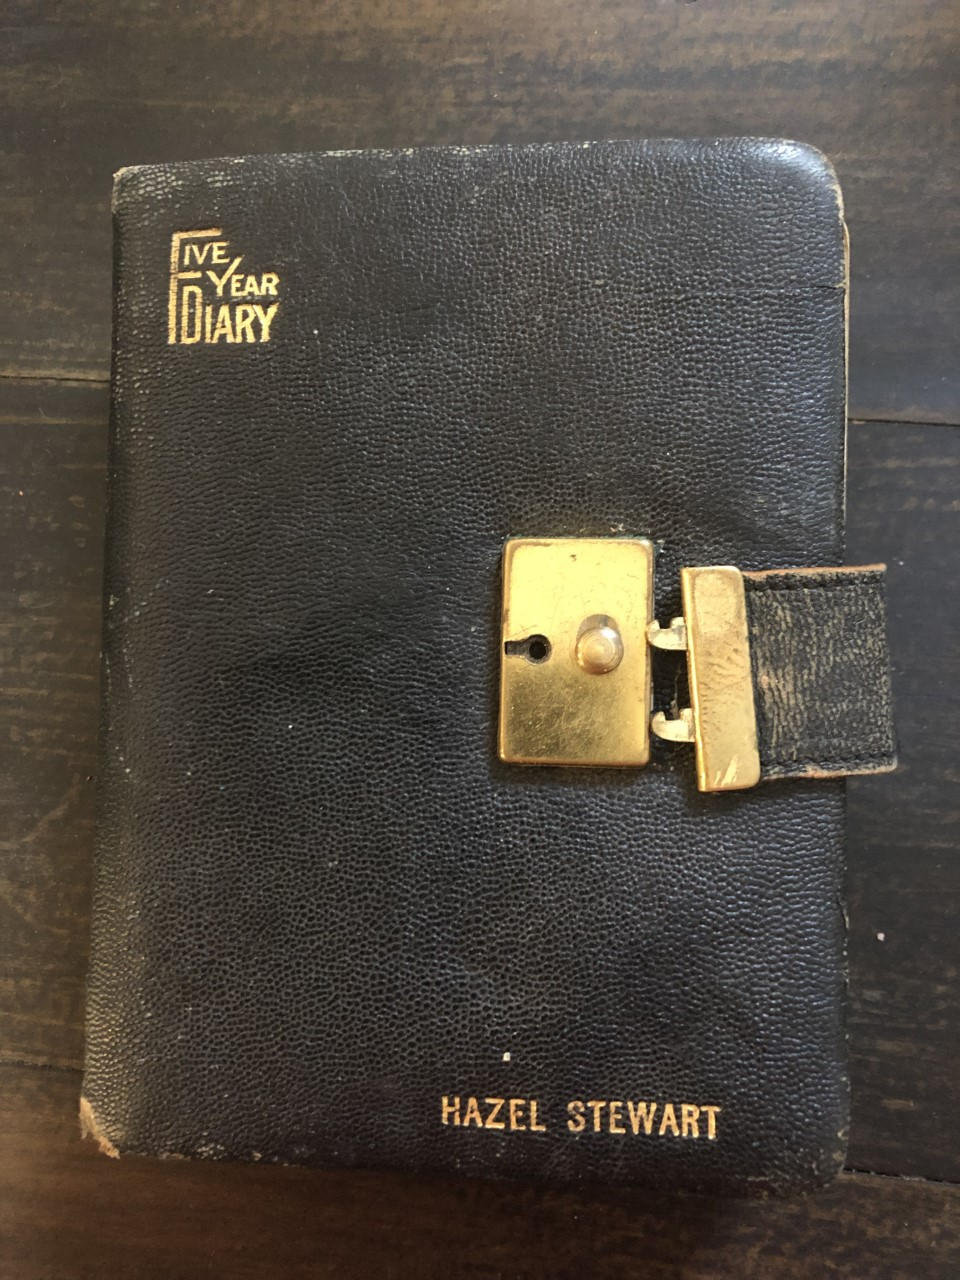 Image for 1938-1942 5 Year Diary of an American Teenager, Learning, Working and Dating, Naively Unaware of the Impact of World War Two